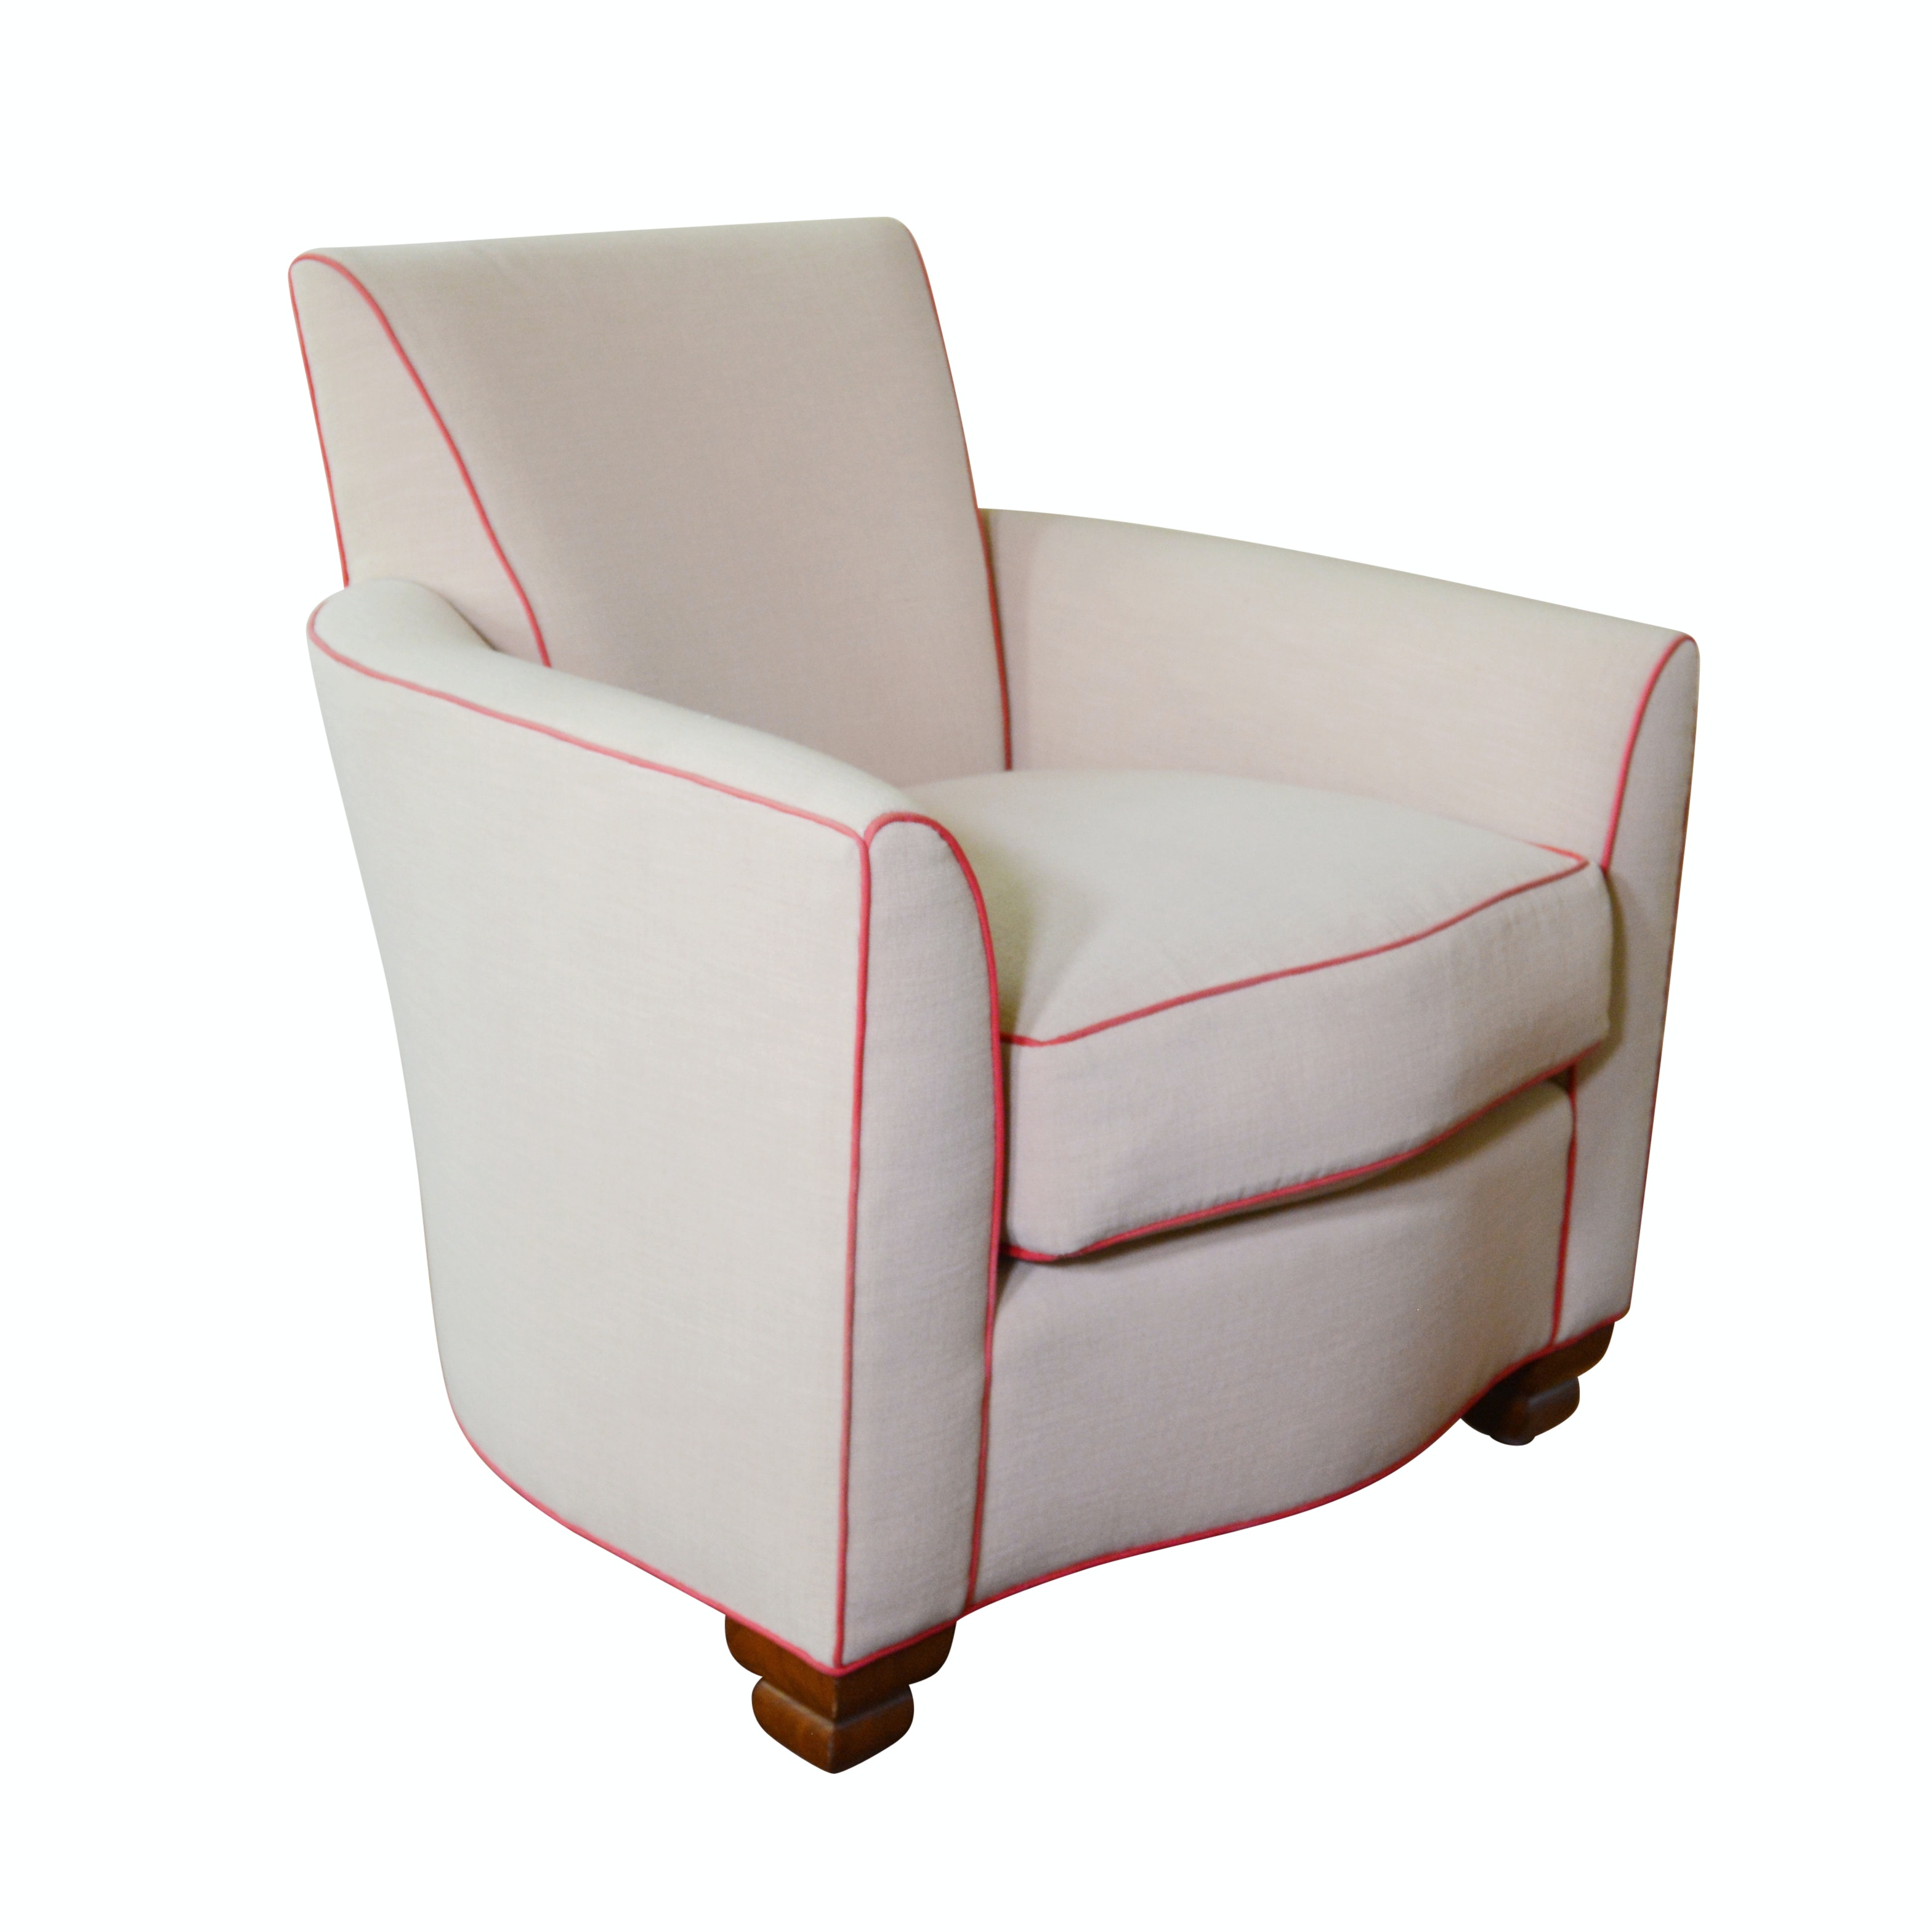 Swaim Furniture Upholstered Lounge Chair ...